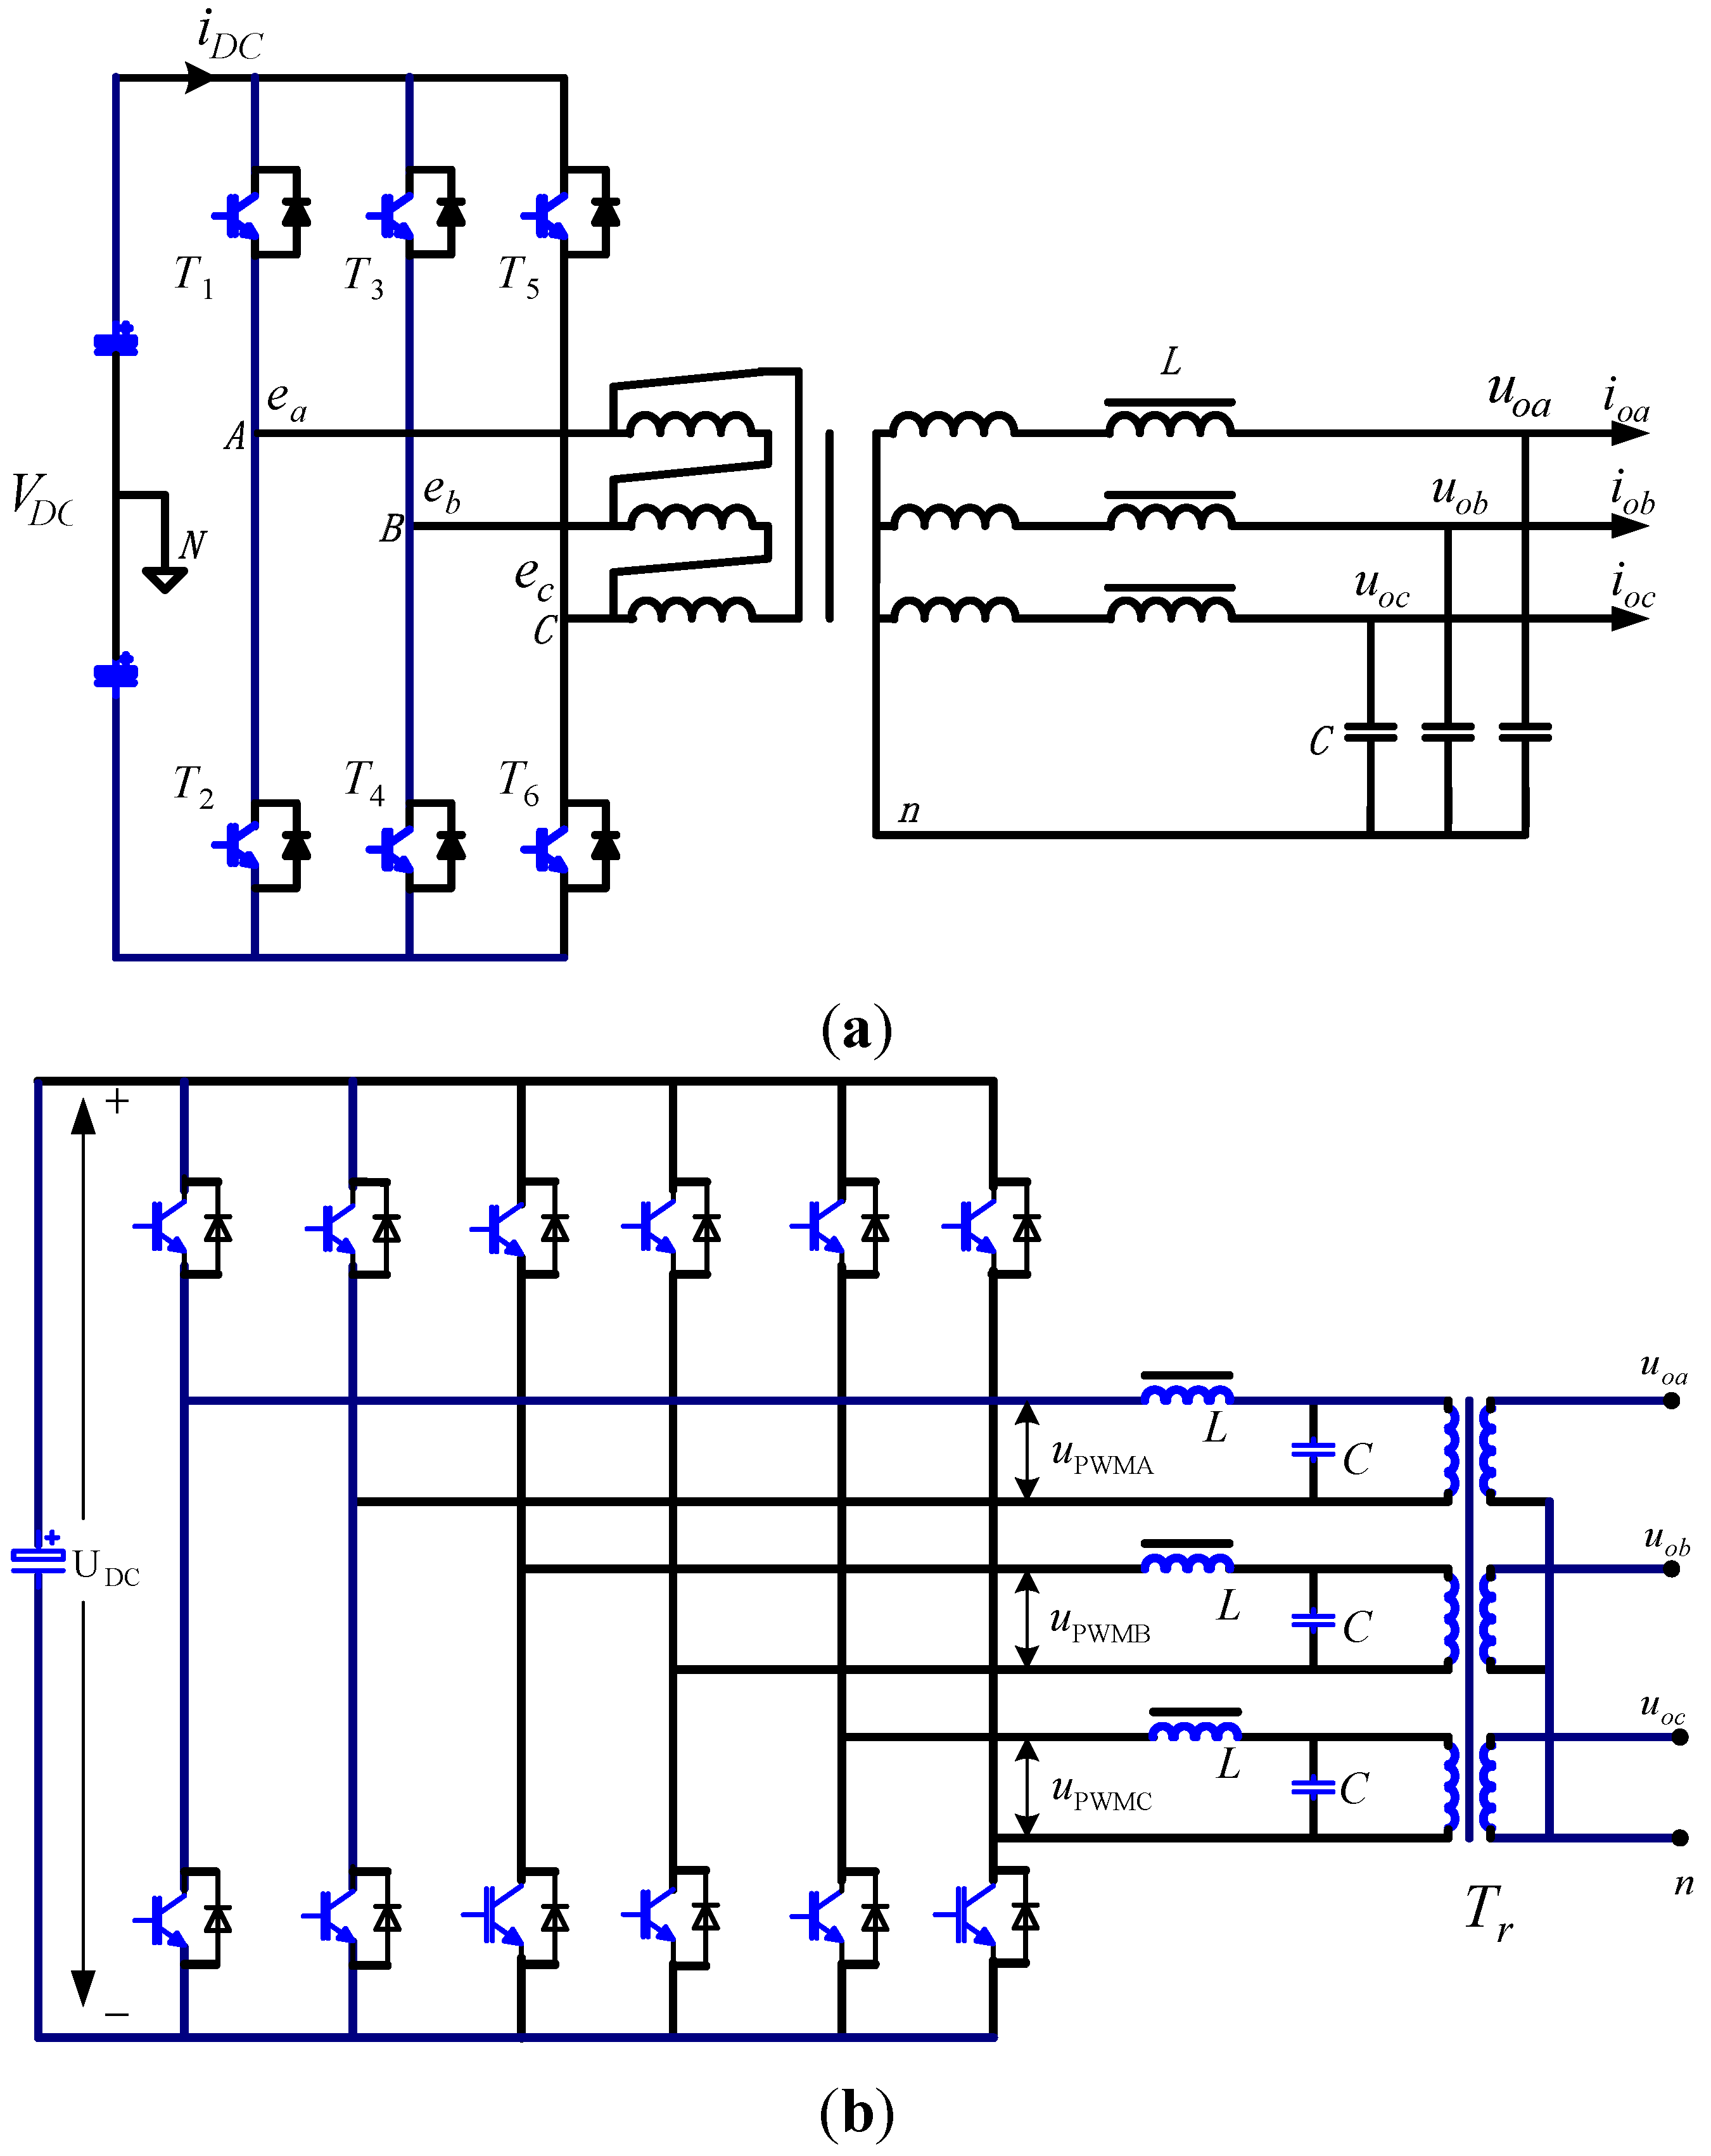 3 Phase Circuit Diagram For Ups Detailed Schematics Offline Library Of Wiring U2022 Electrical